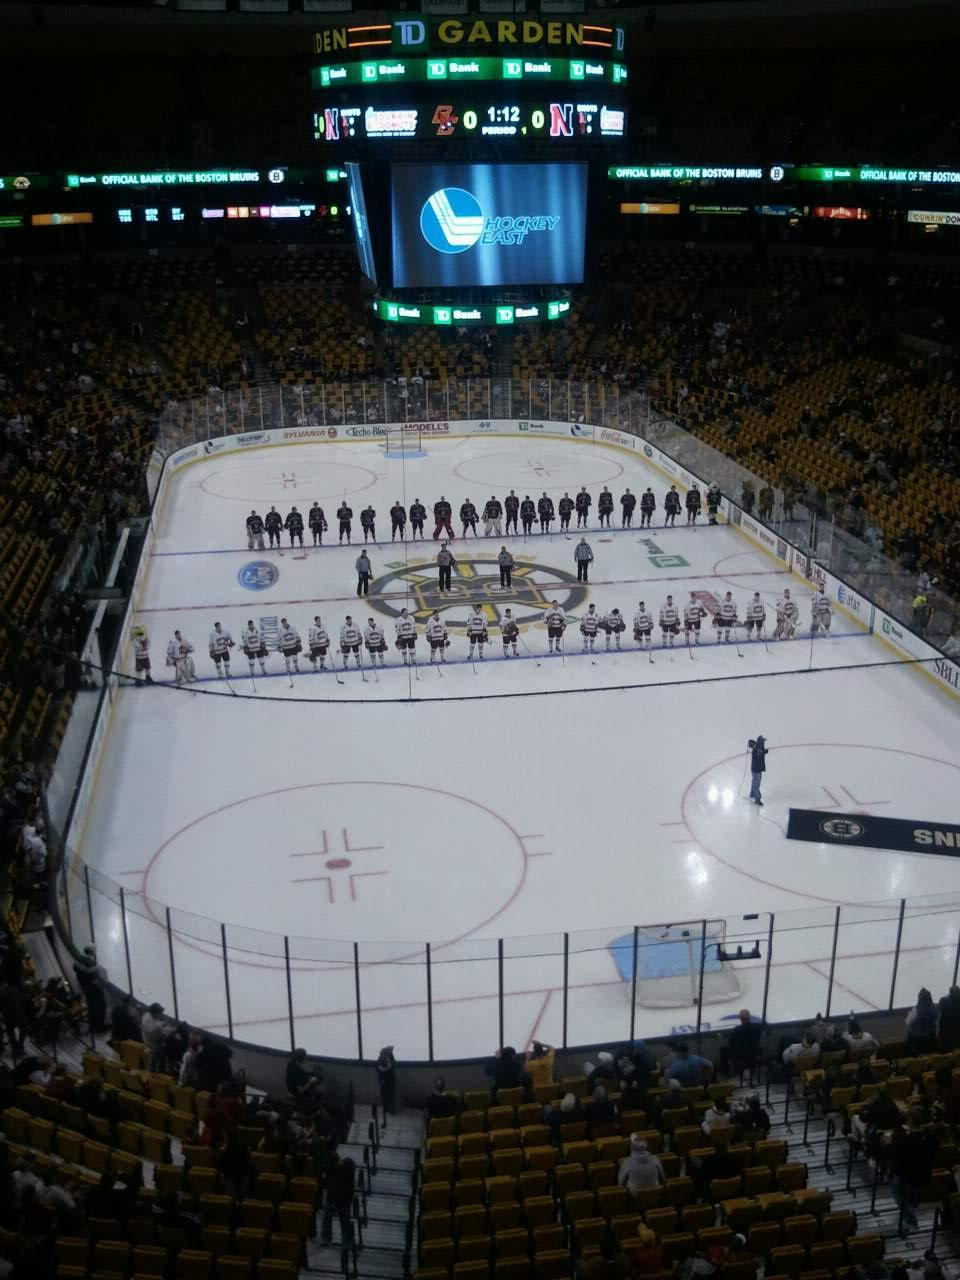 TD Garden Section Bal 324 Row 1 Seat 16